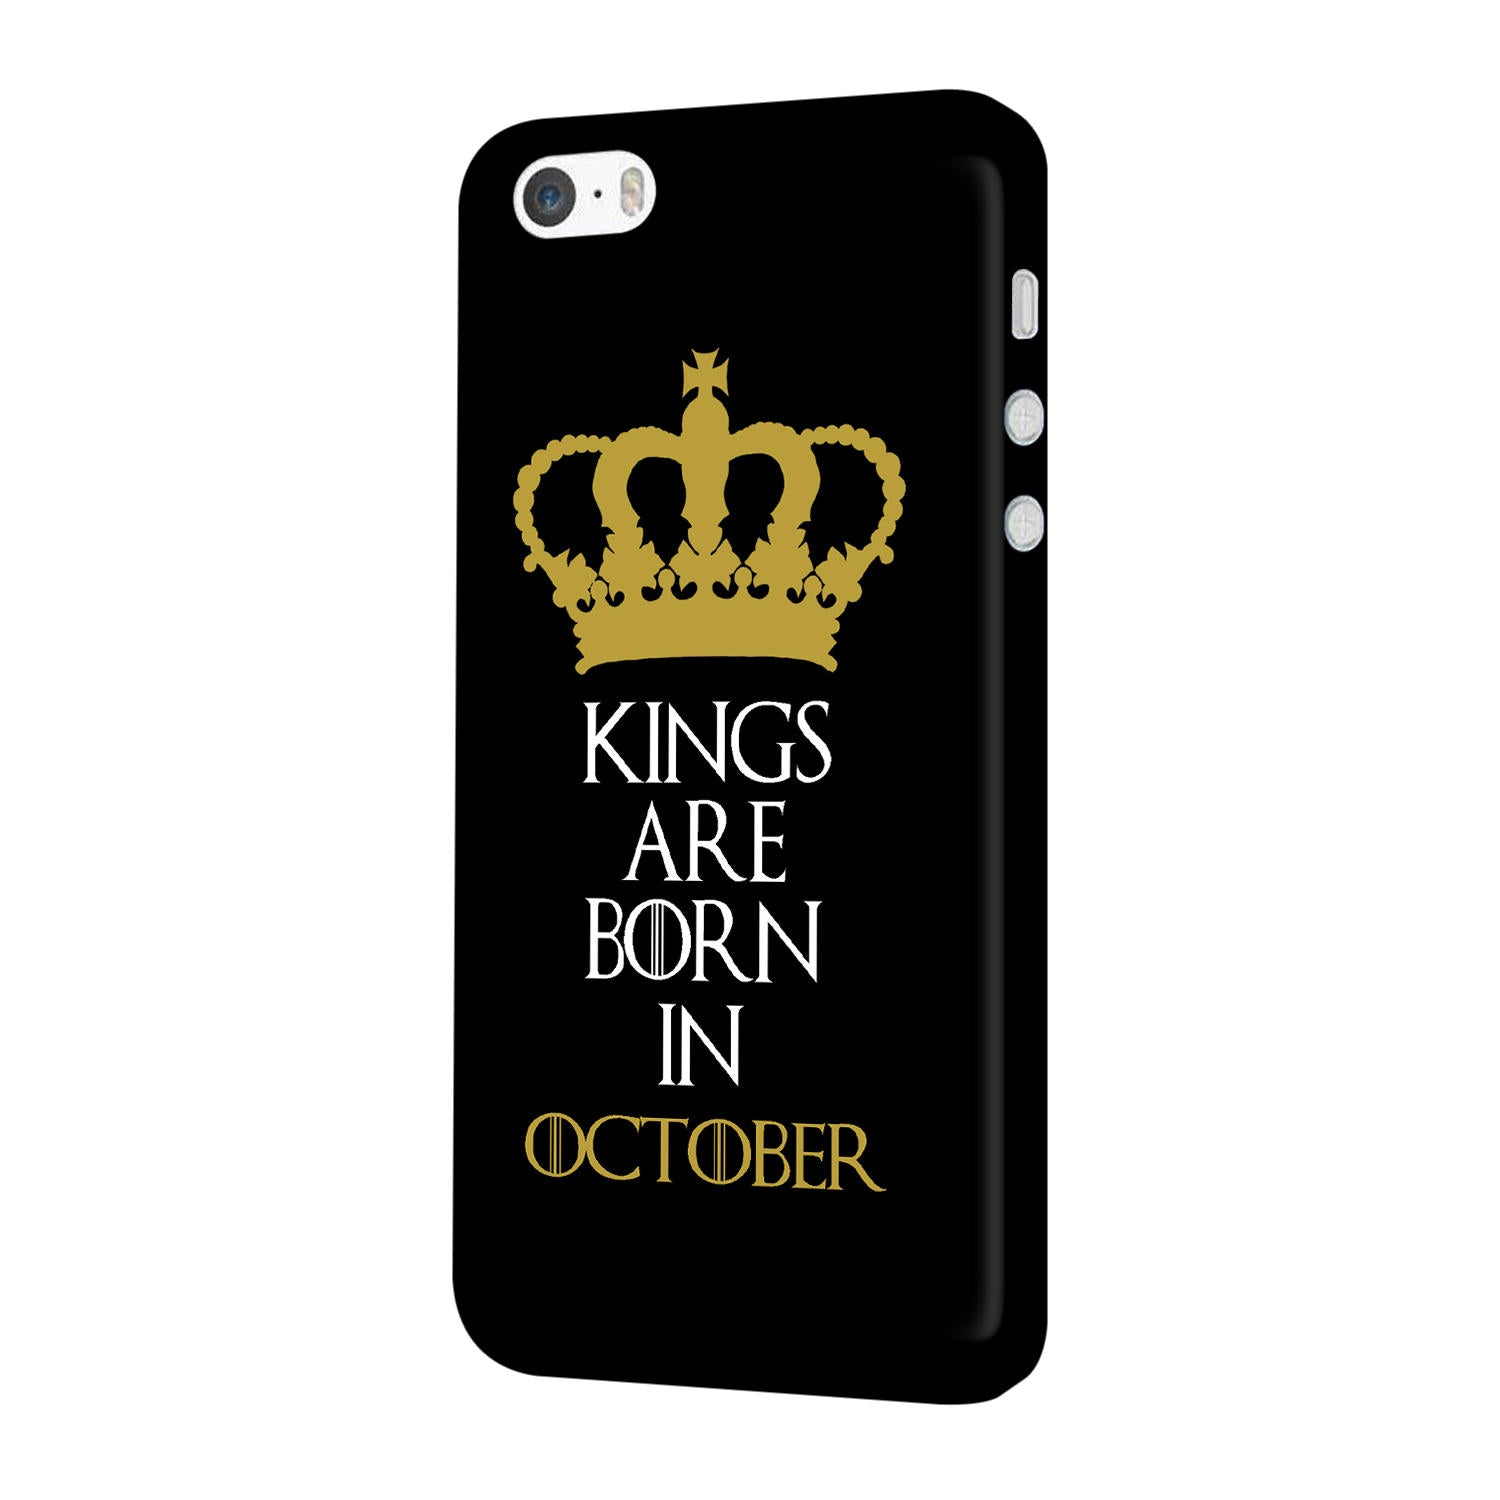 Kings October iPhone 5 Mobile Cover Case - MADANYU